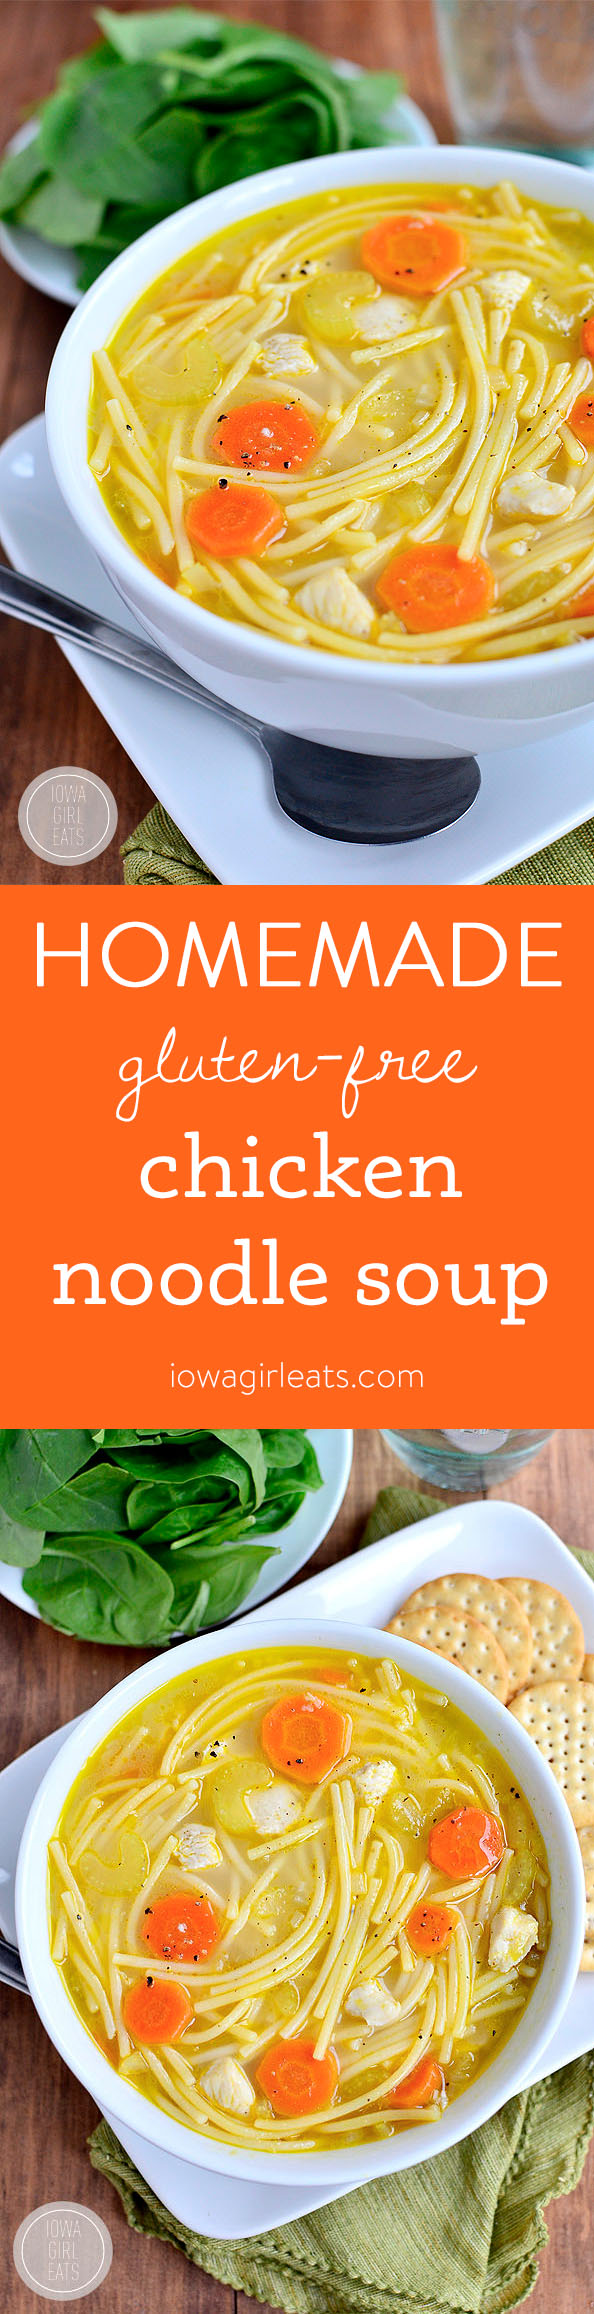 Homemade Chicken Noodle Soup - Gluten-Free! | iowagirleats.com